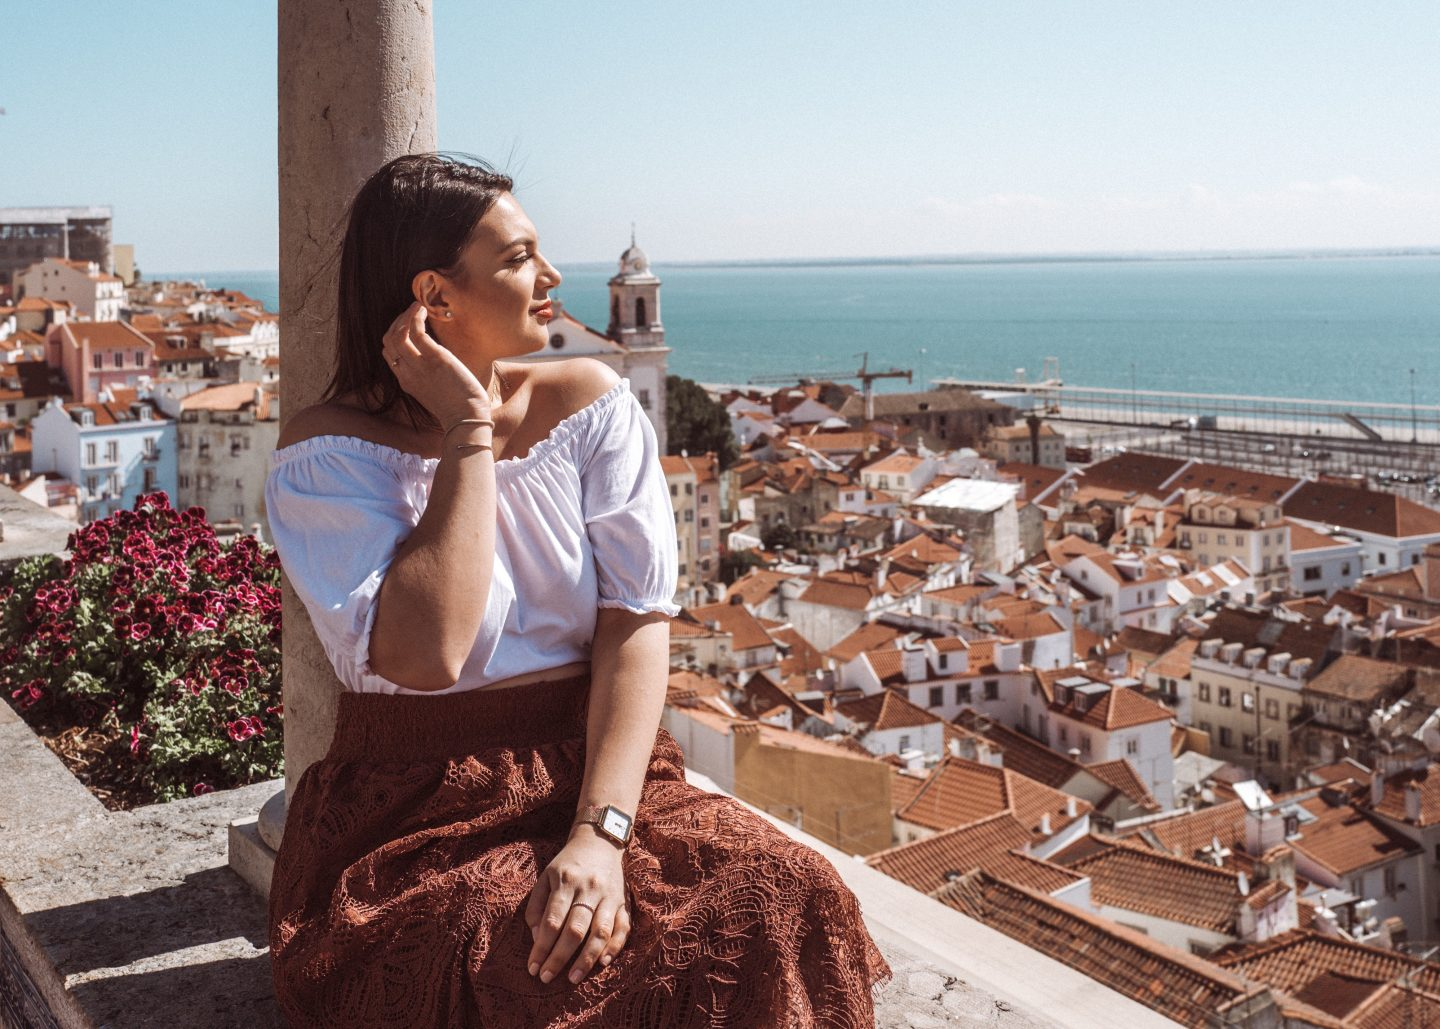 Mihaela sitting on a terrace overlooking Lisbon rooftops and the water